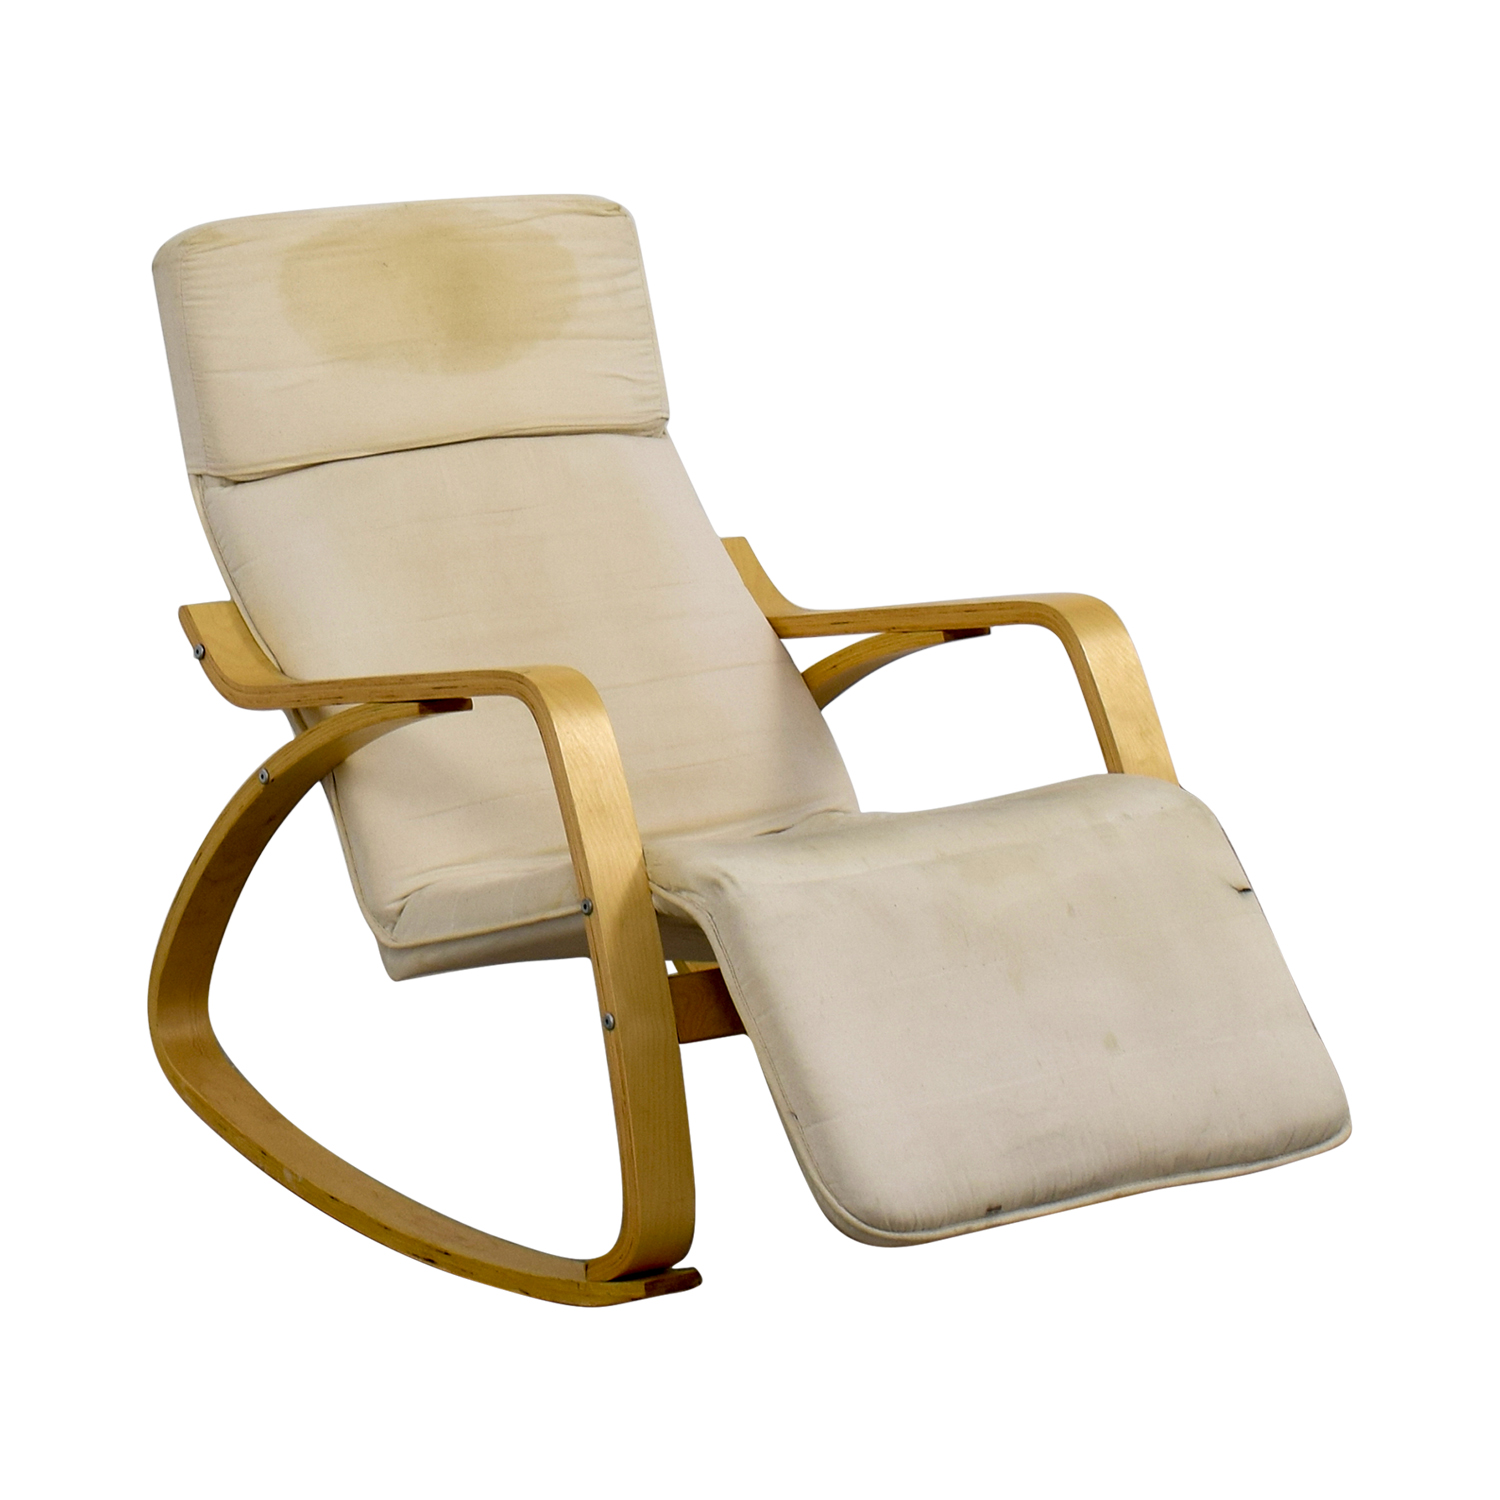 White Wooden Rocking Chairs For Sale 90 Off White Rocking Chair With Recliner Chairs